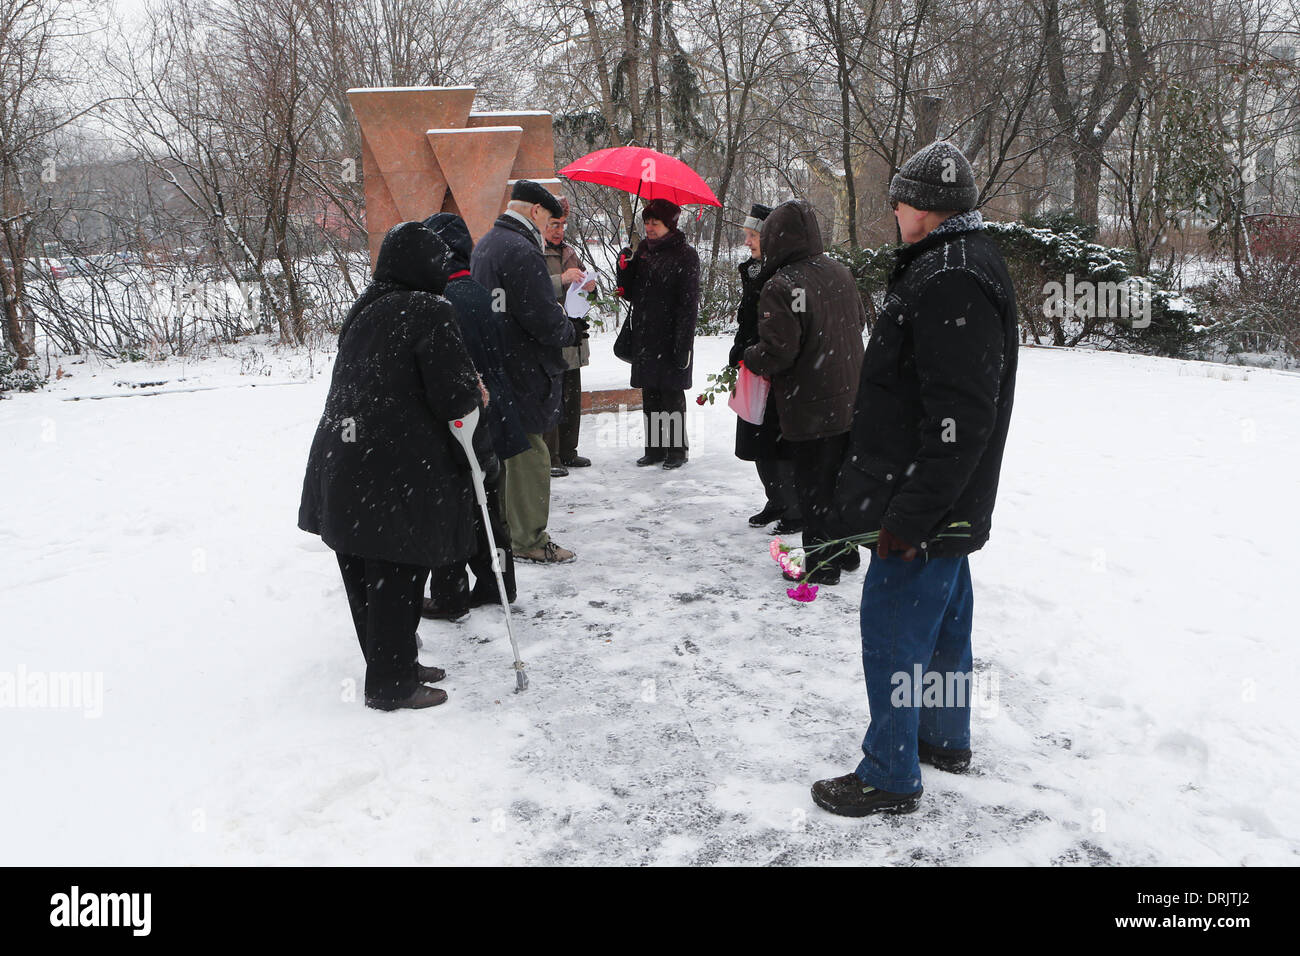 Berlin, Germany. 27th Jan, 2014. Survivors of Nazi's holocaust gather in front of a monument for holocaust victims Stock Photo